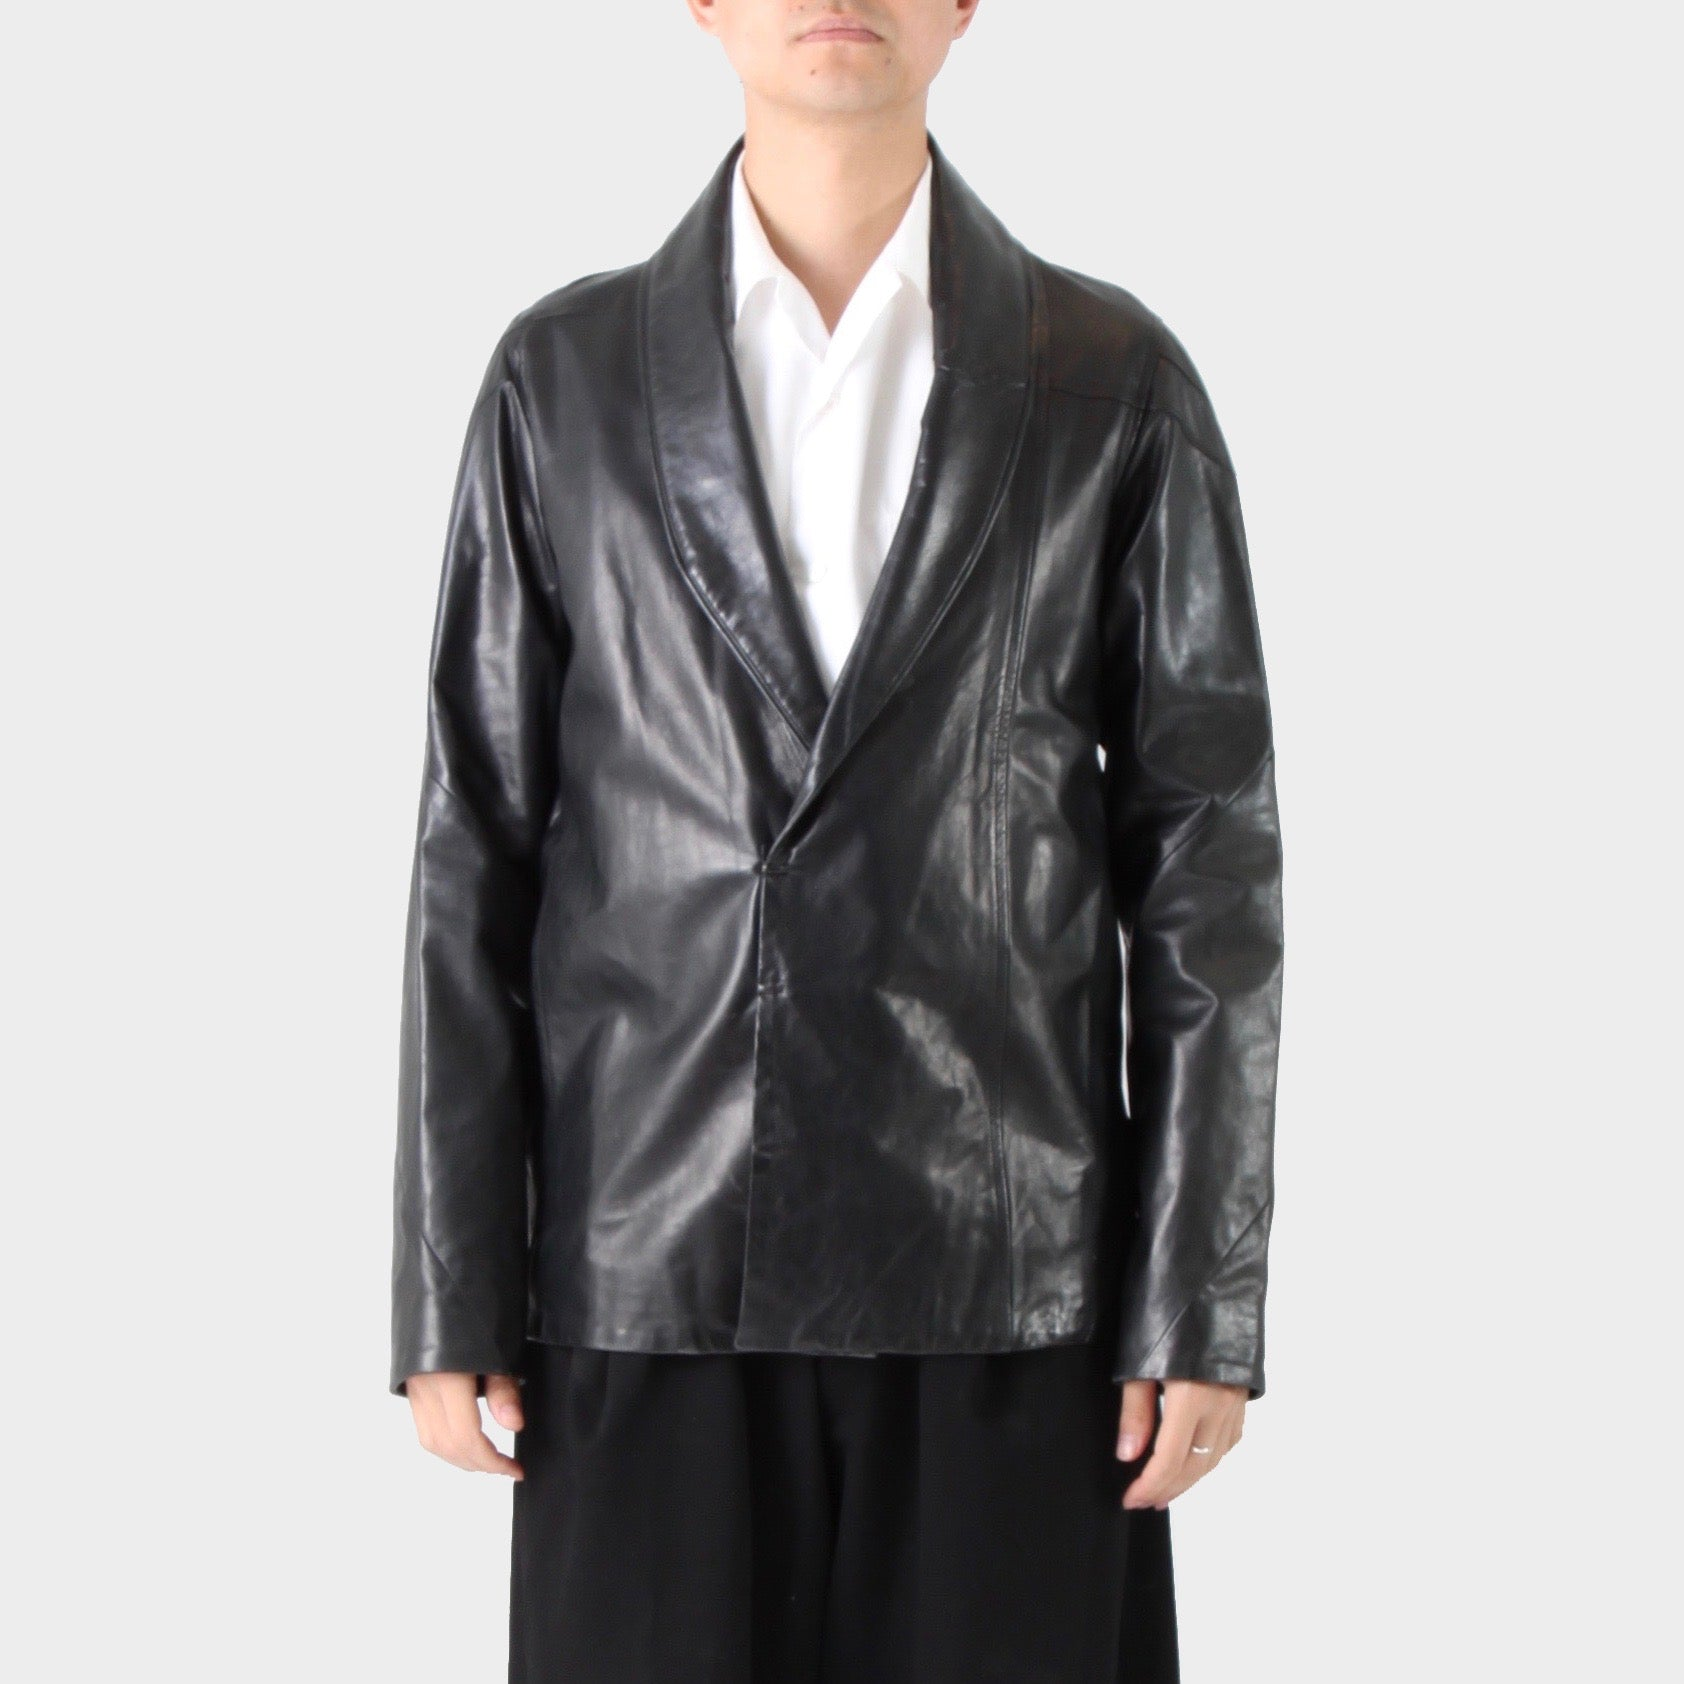 Gustavolins Leather Jacket